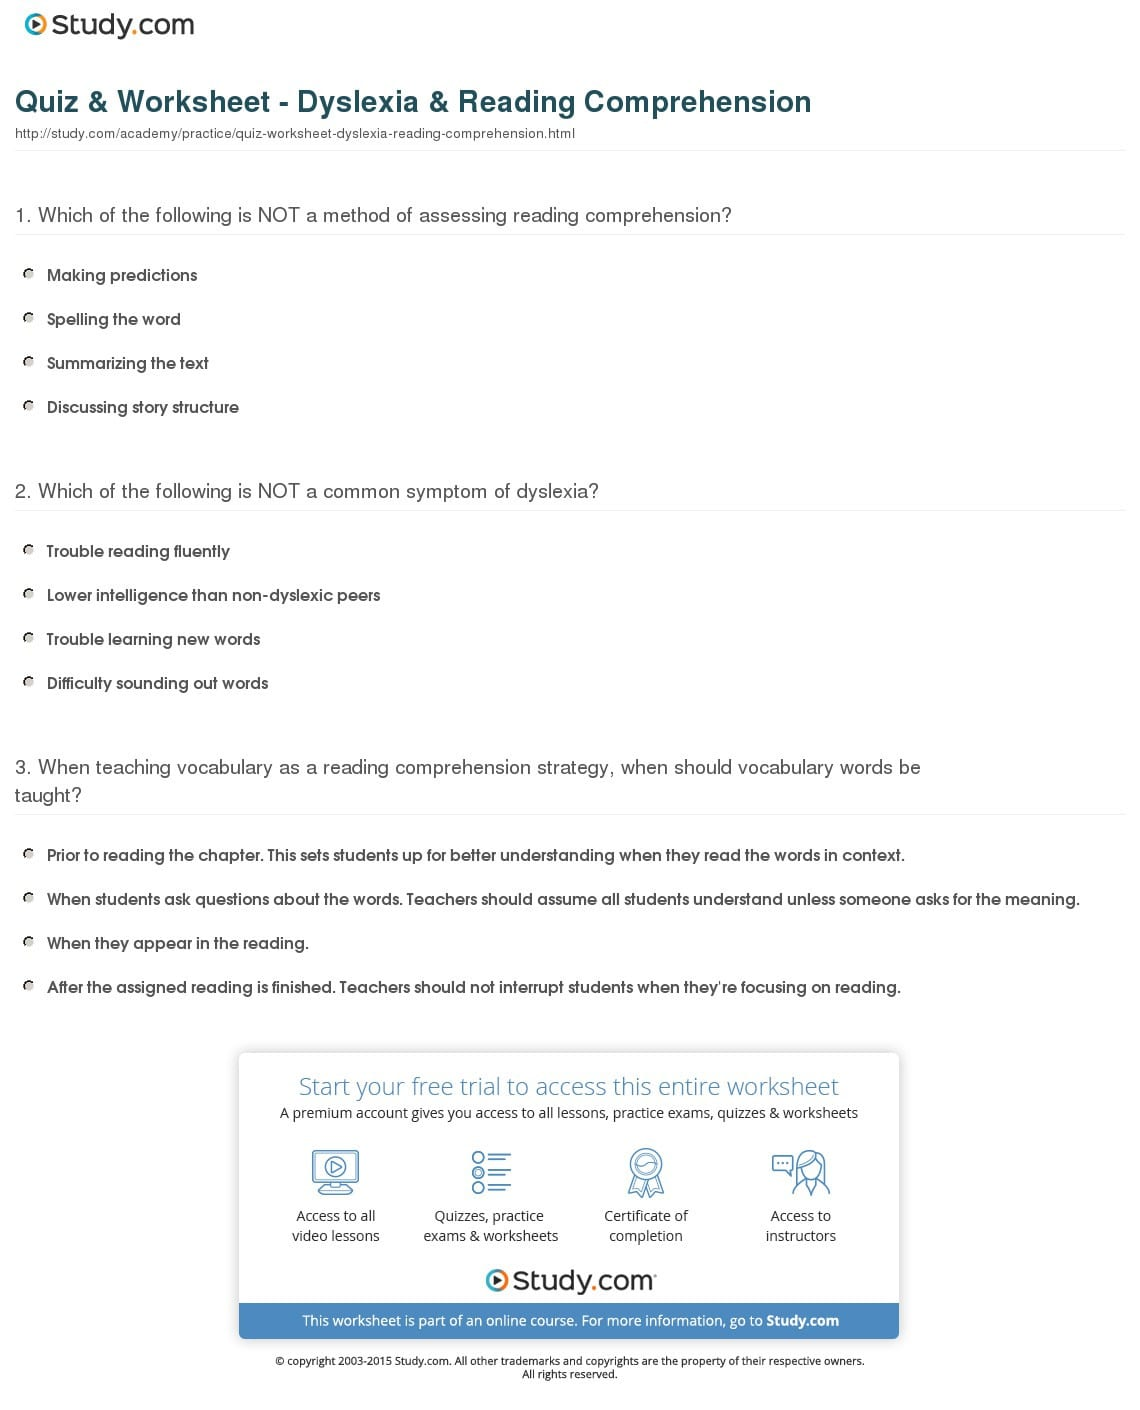 Quiz Worksheet Dyslexia Reading Comprehension Study